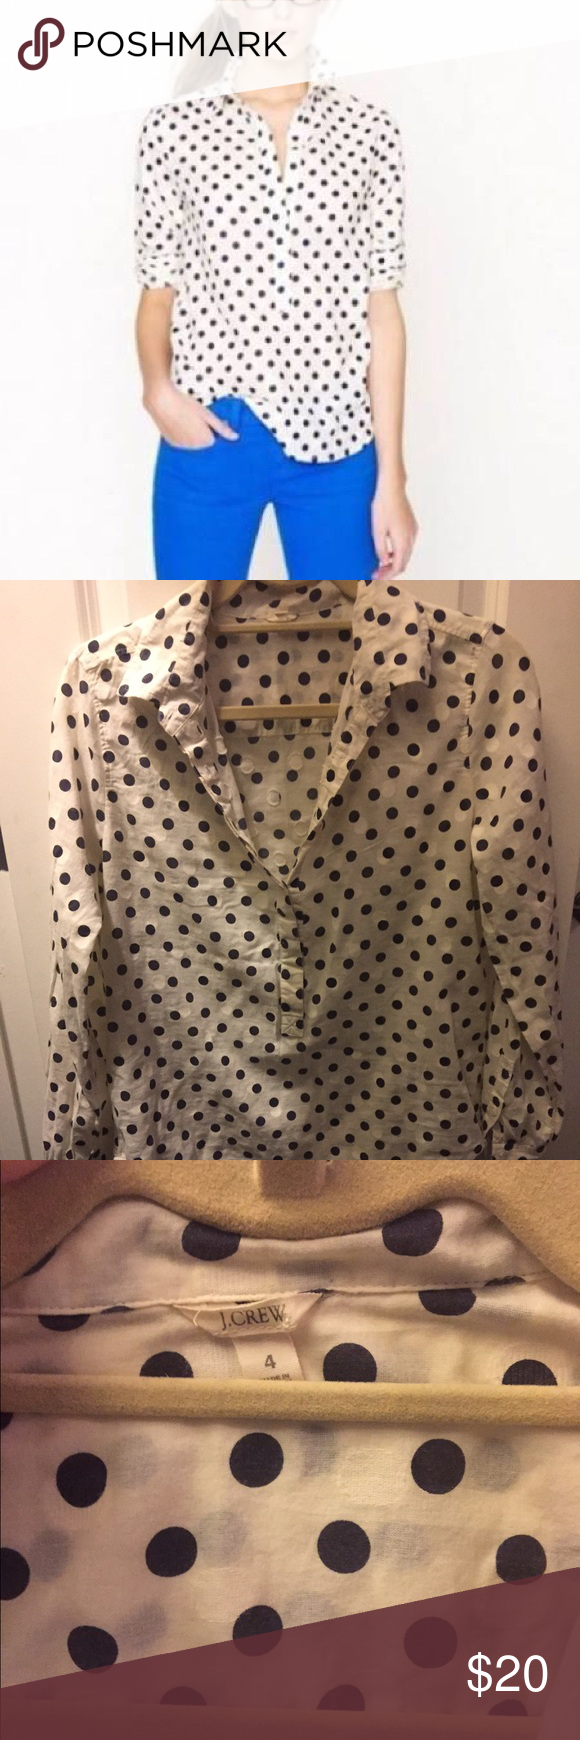 J. Crew Popover blouse Barely worn, great condition blouse with polka dots. J. Crew Tops Blouses